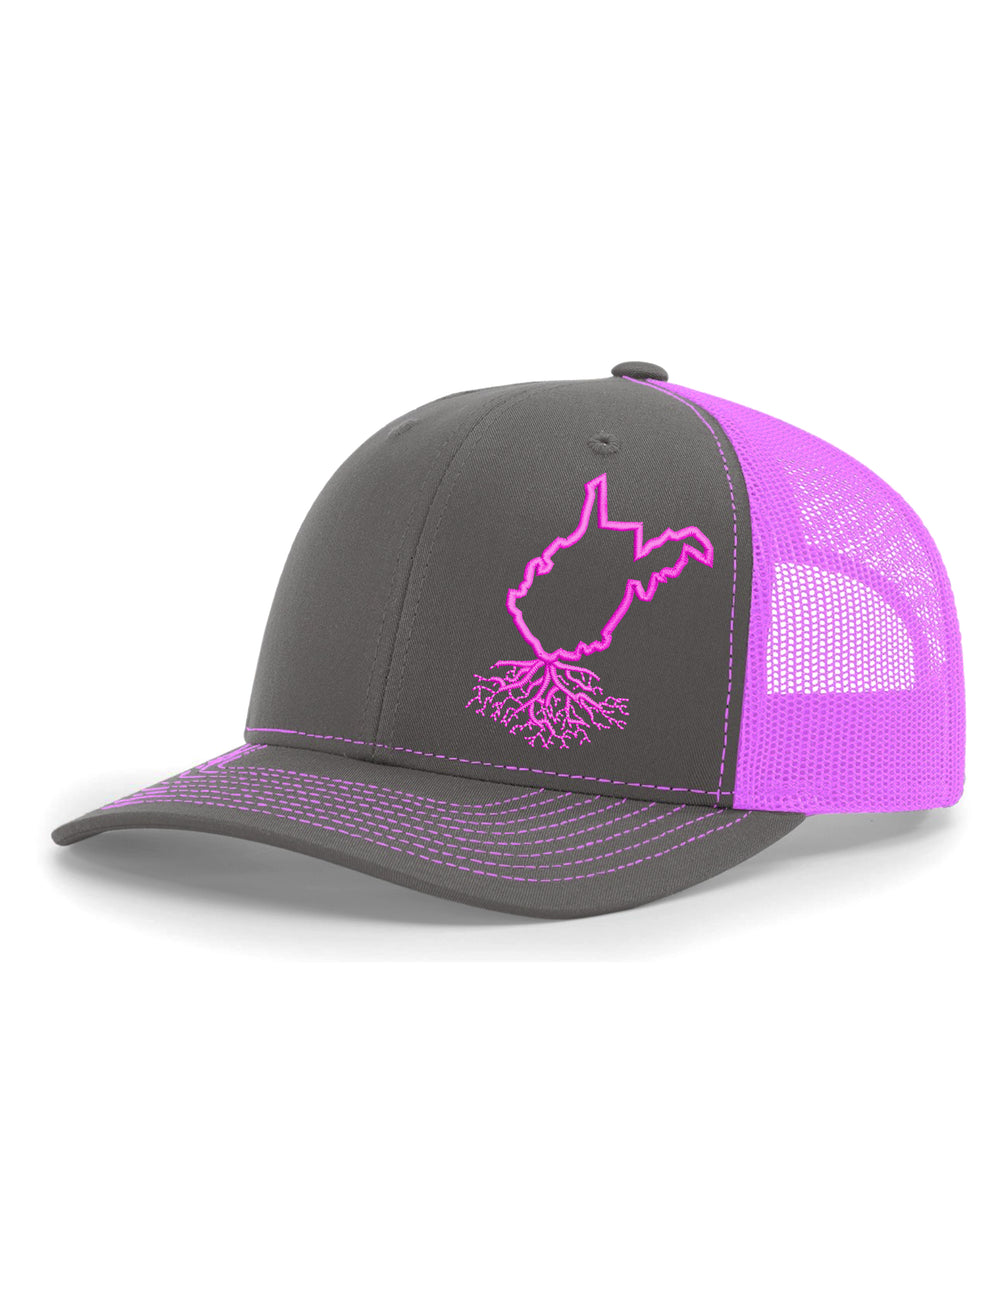 West Virginia Snapback Trucker